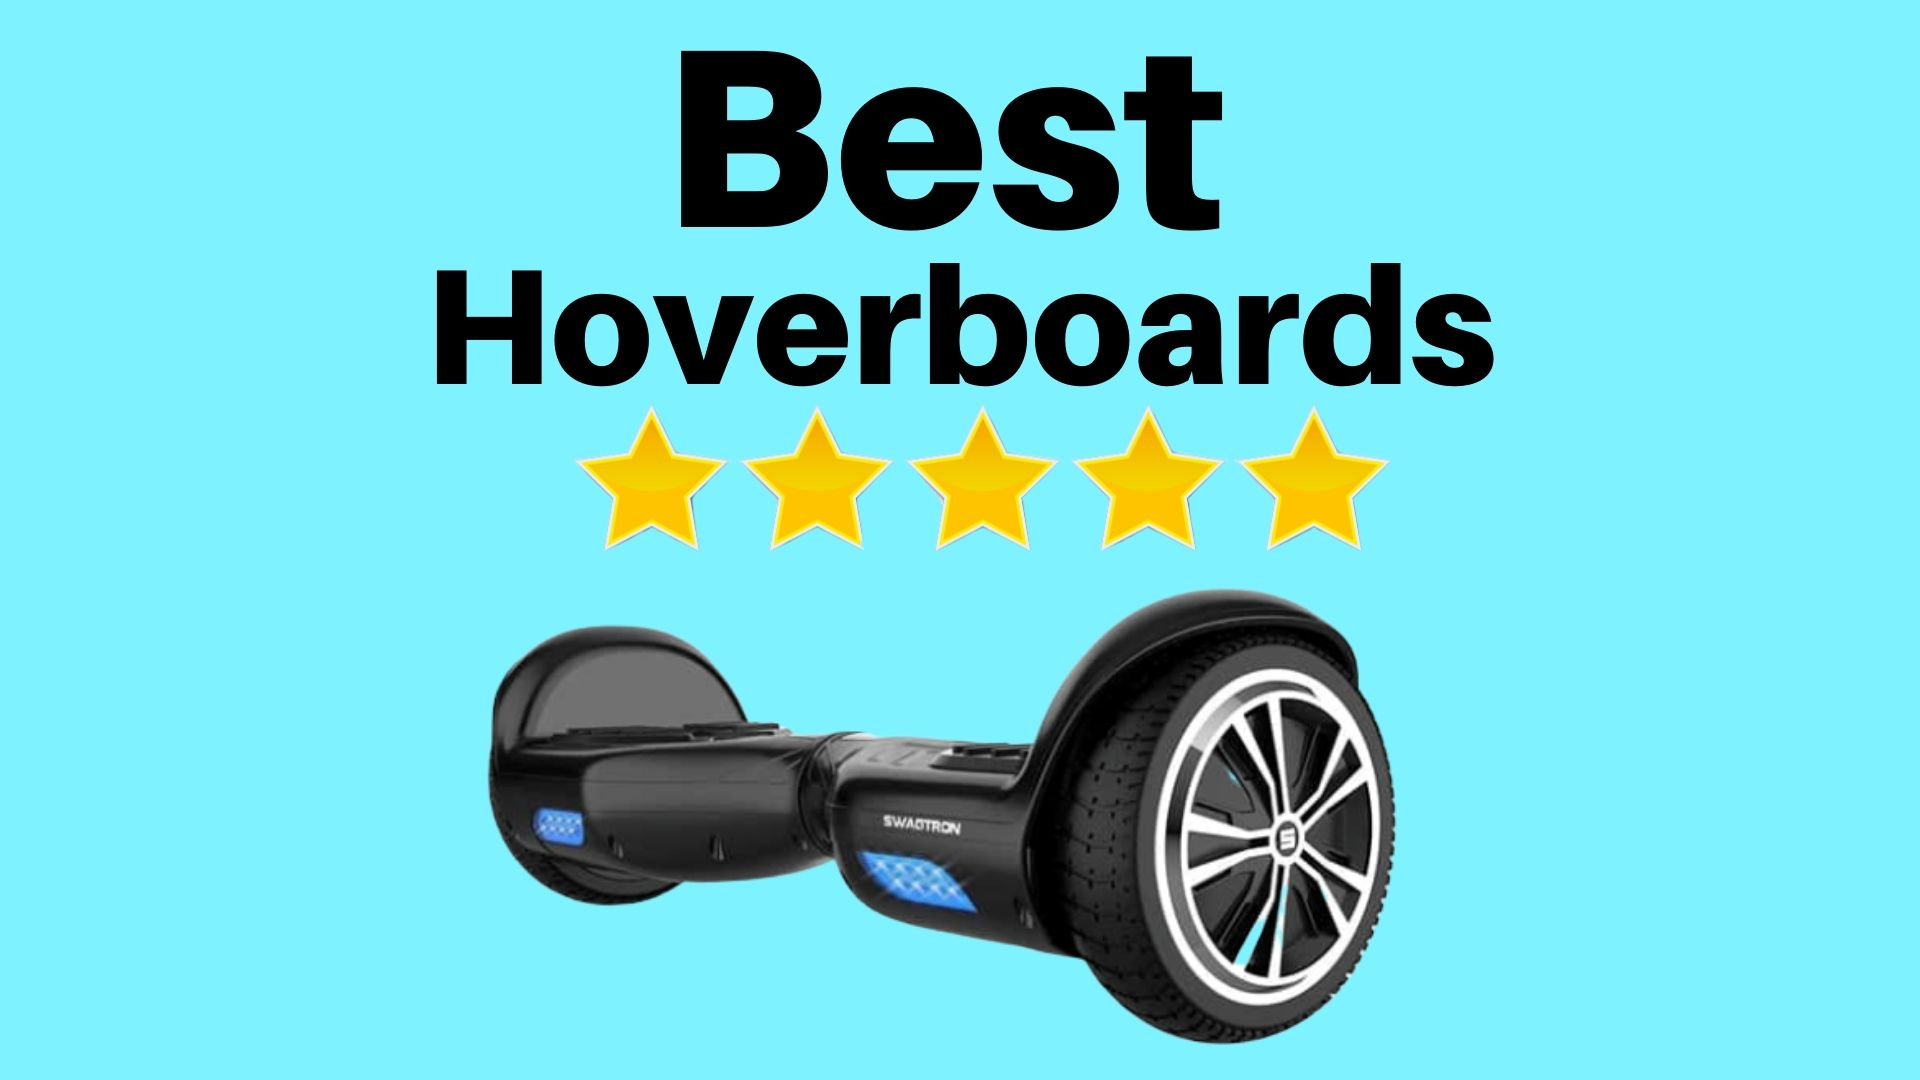 Top Hoverboards